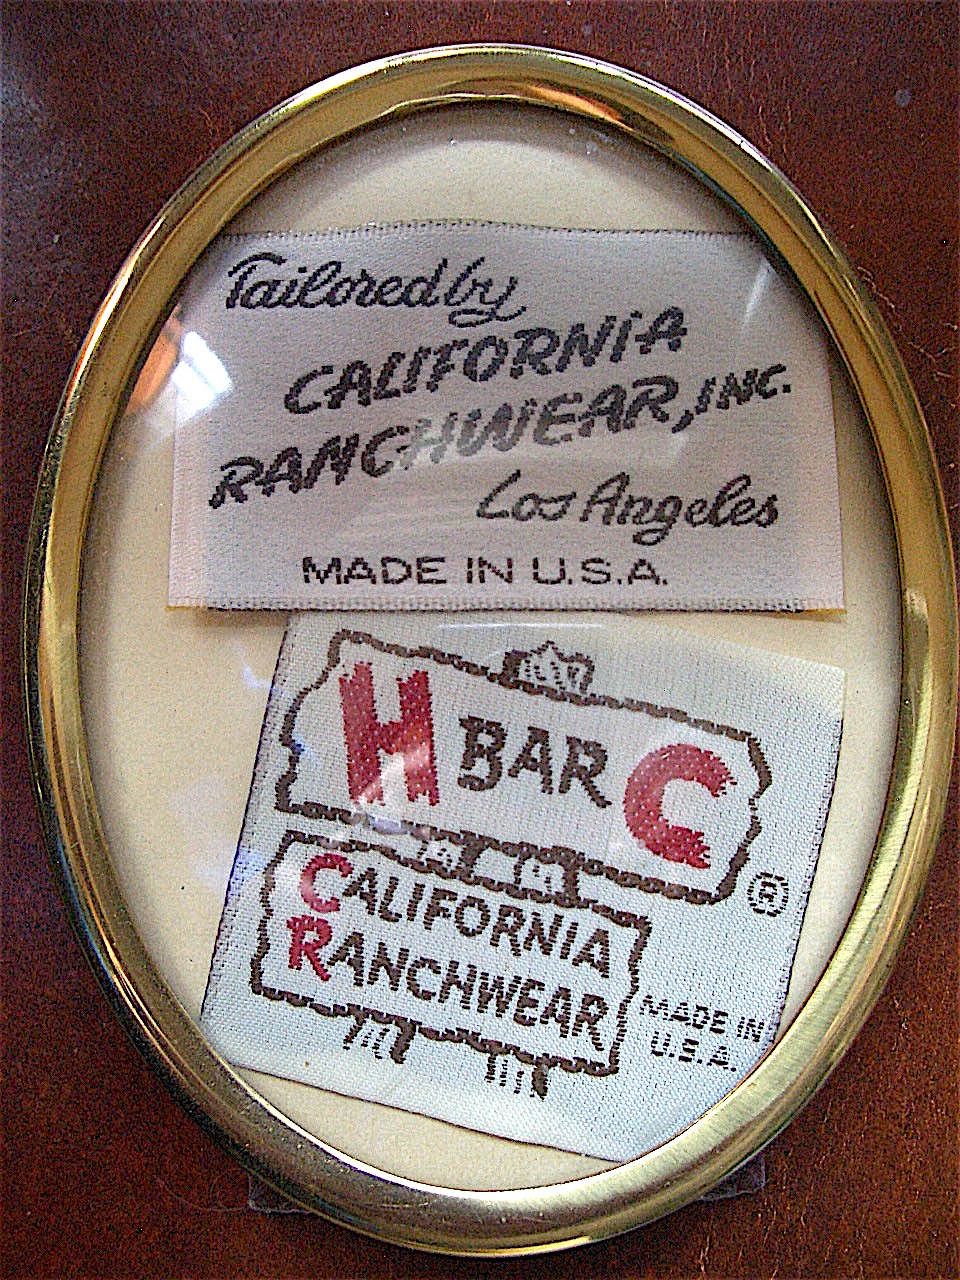 H-Bar-C labels - Tailored by California Ranchwear, Inc. Los Angeles, Made in U.S.A.